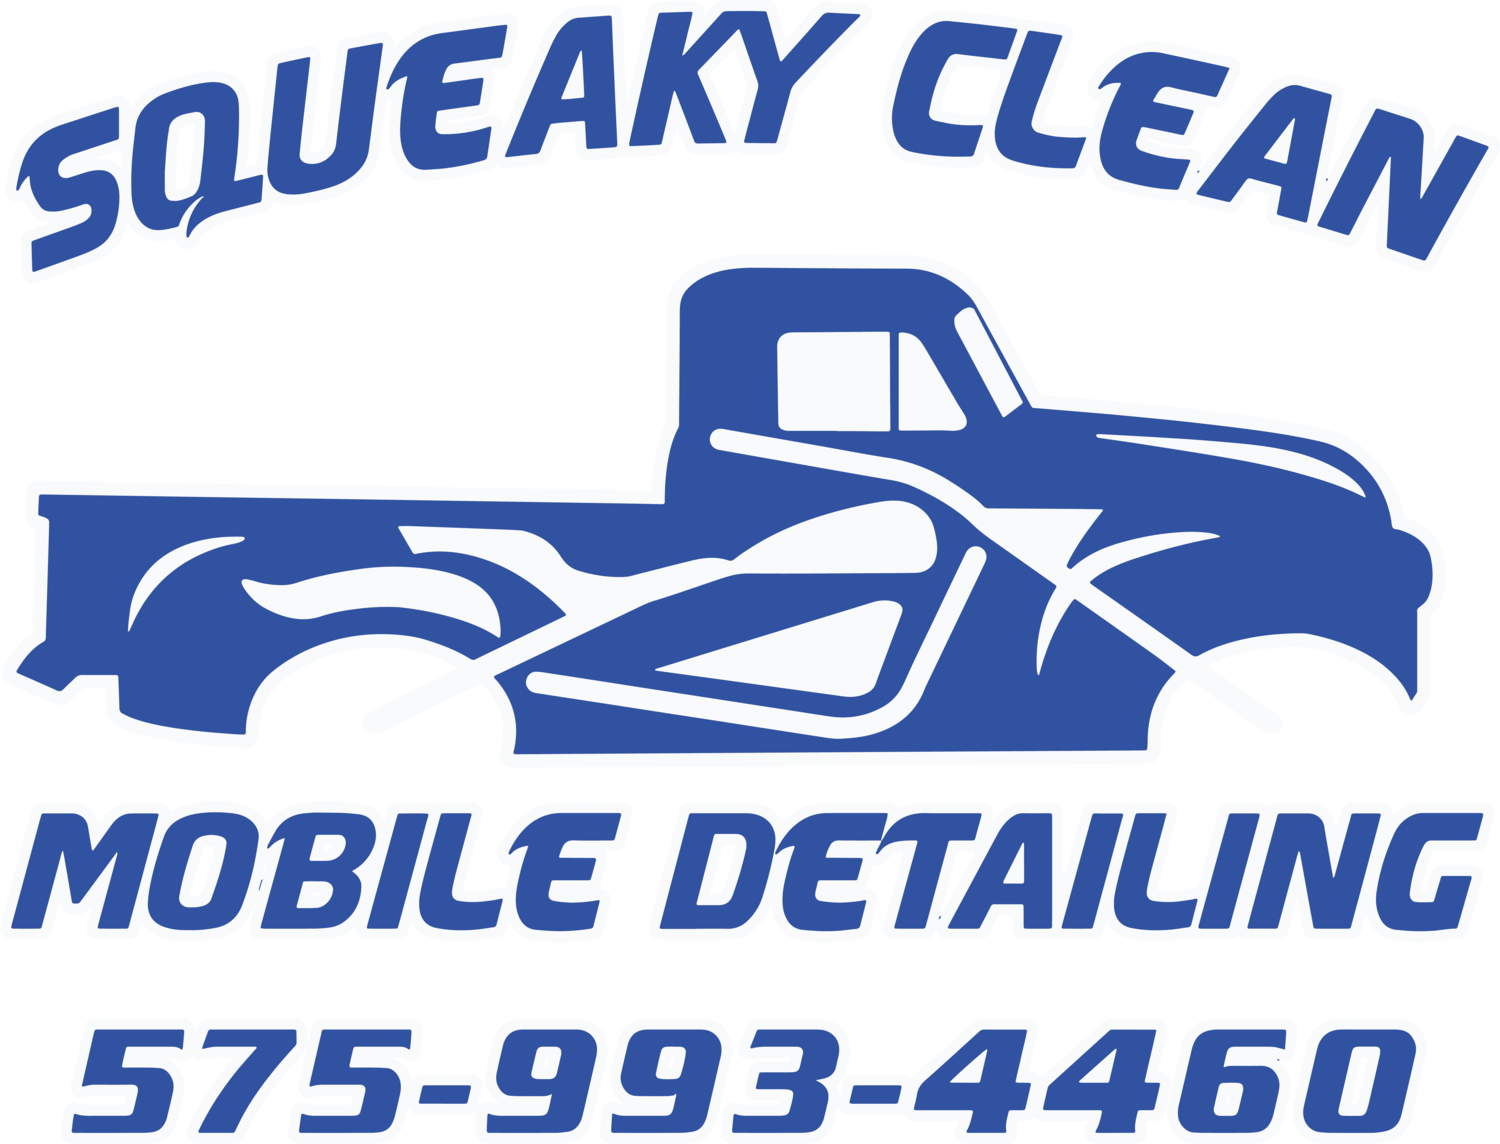 Car seat clipart detailing freeuse download Squeaky Clean Auto Detail freeuse download